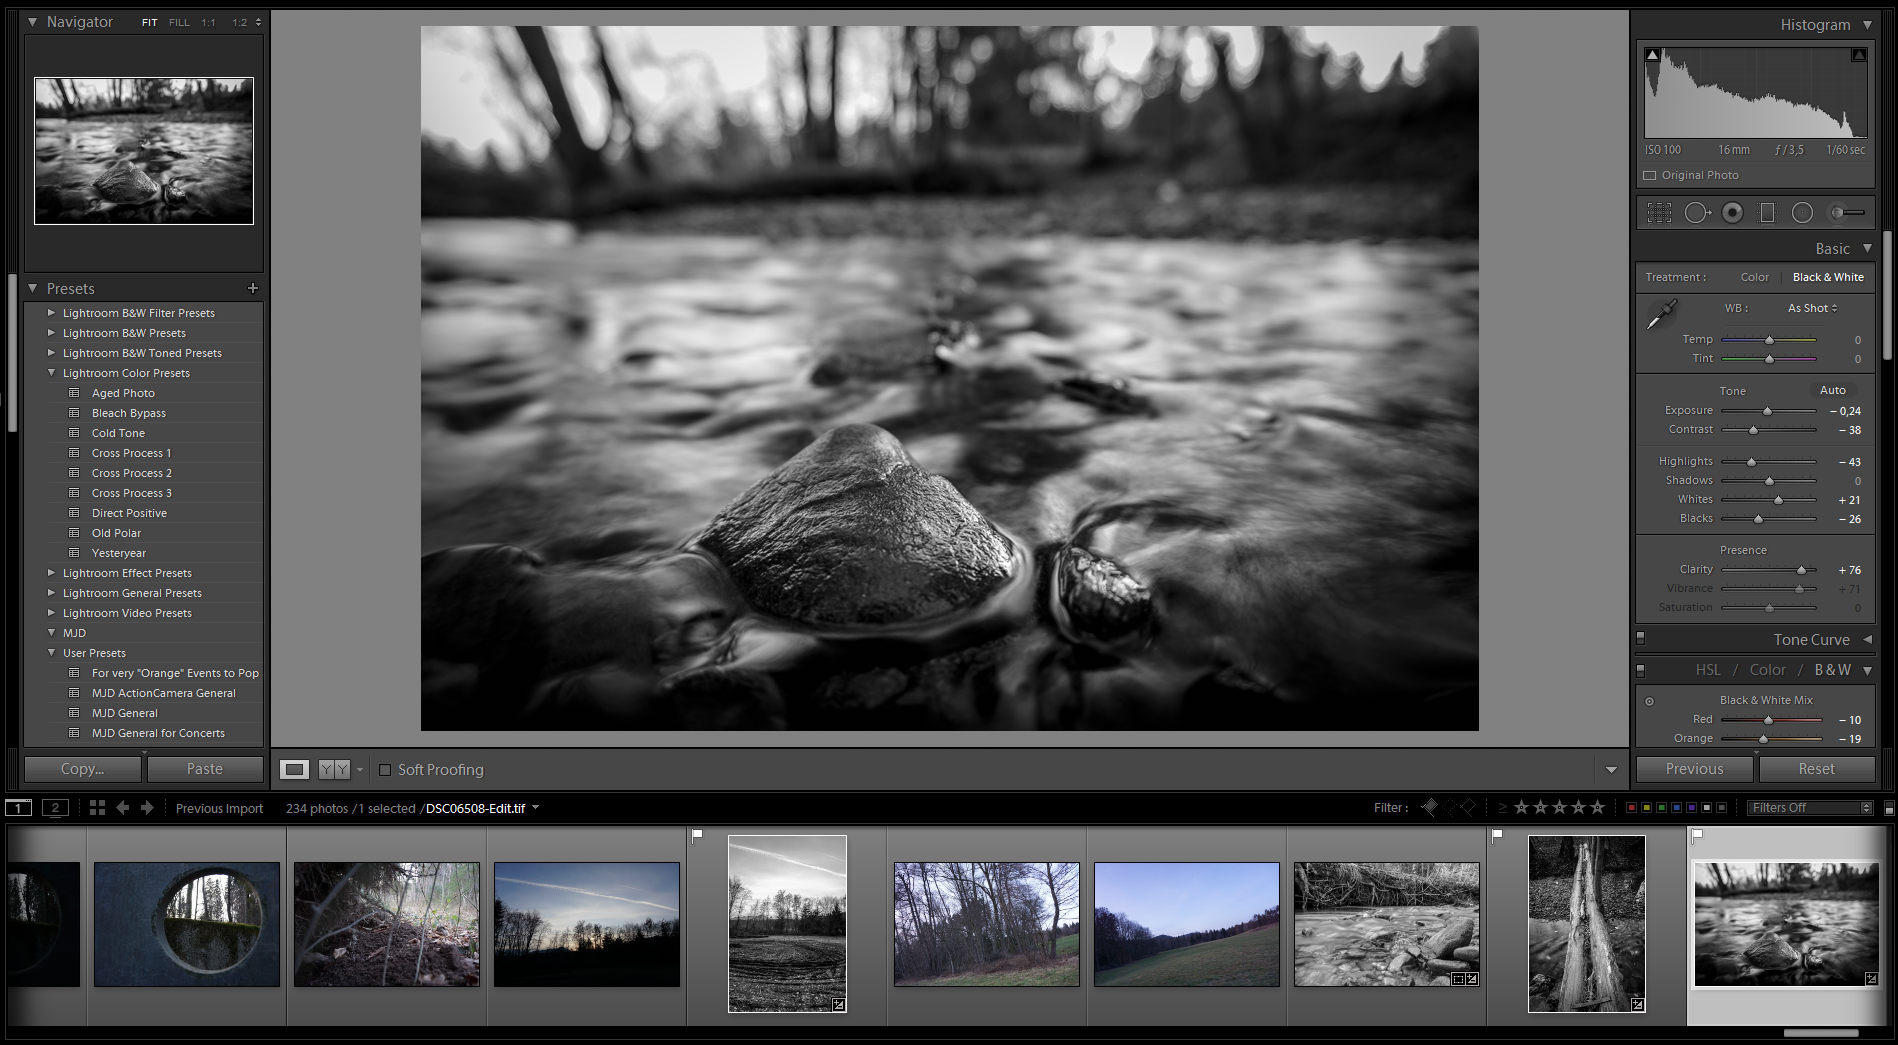 lightroom finish - Long exposures without an ND filter